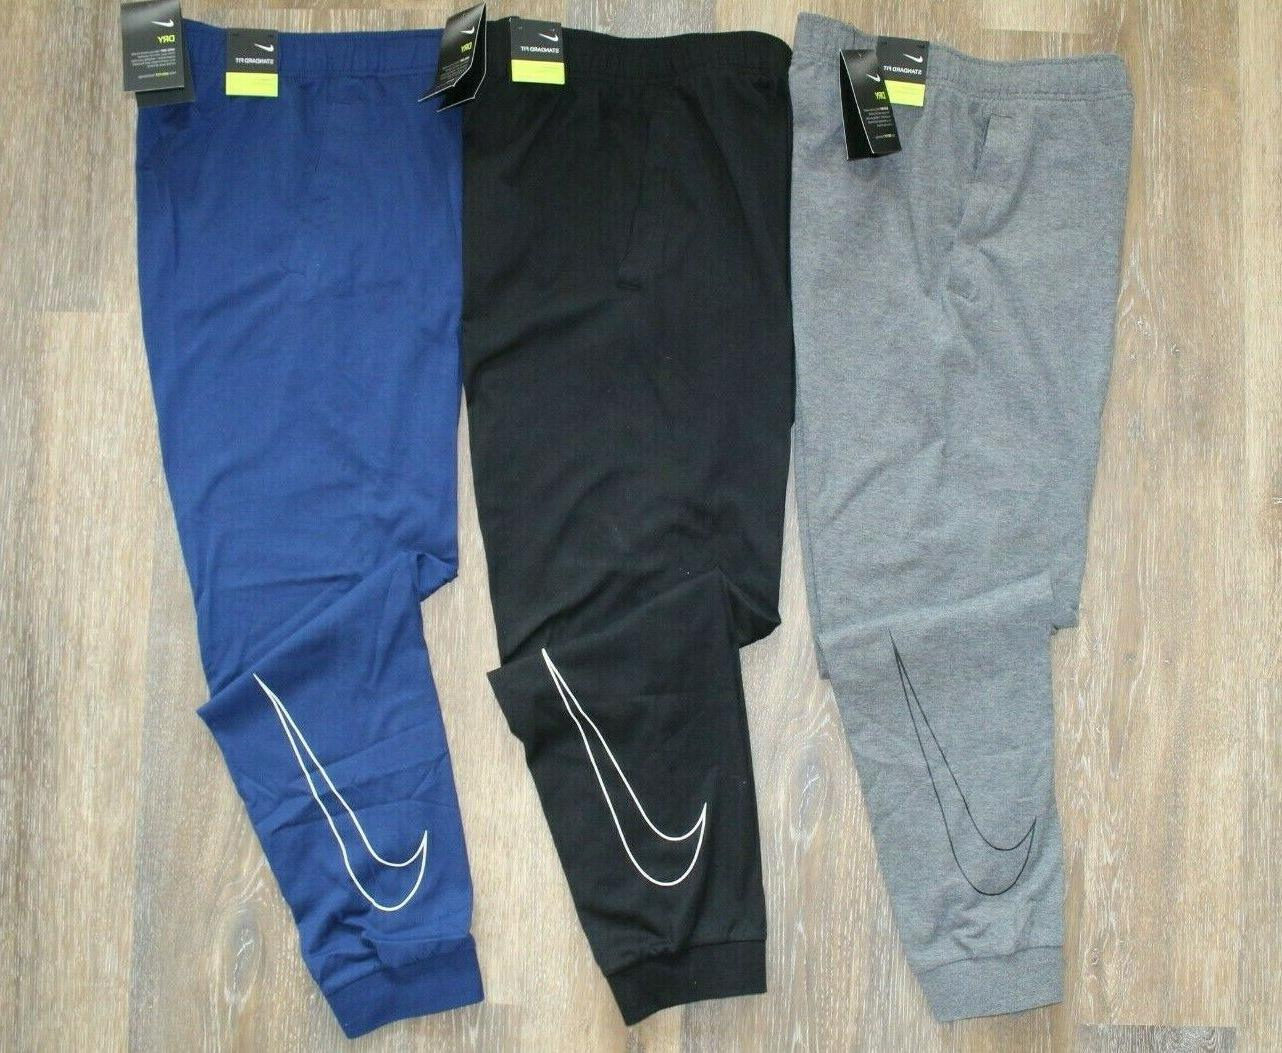 Fleece Jersey Sweatpants Gray Blue